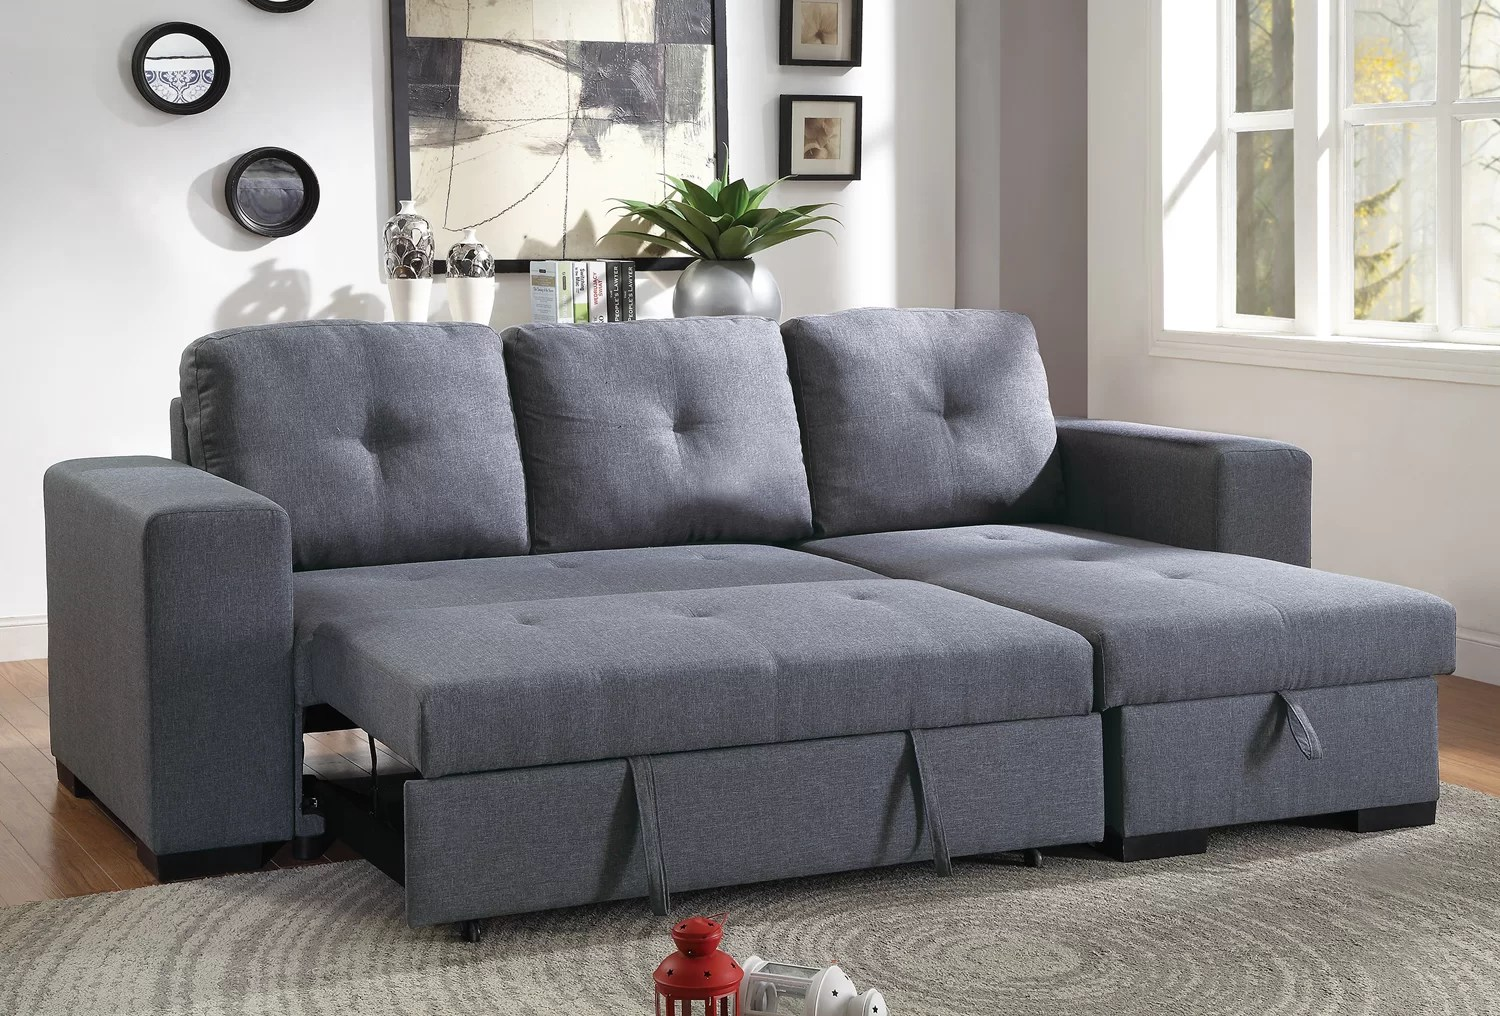 Sectional Pull Out Couch Buchman Linen Like Reversible Sectional With Pull Out Bed